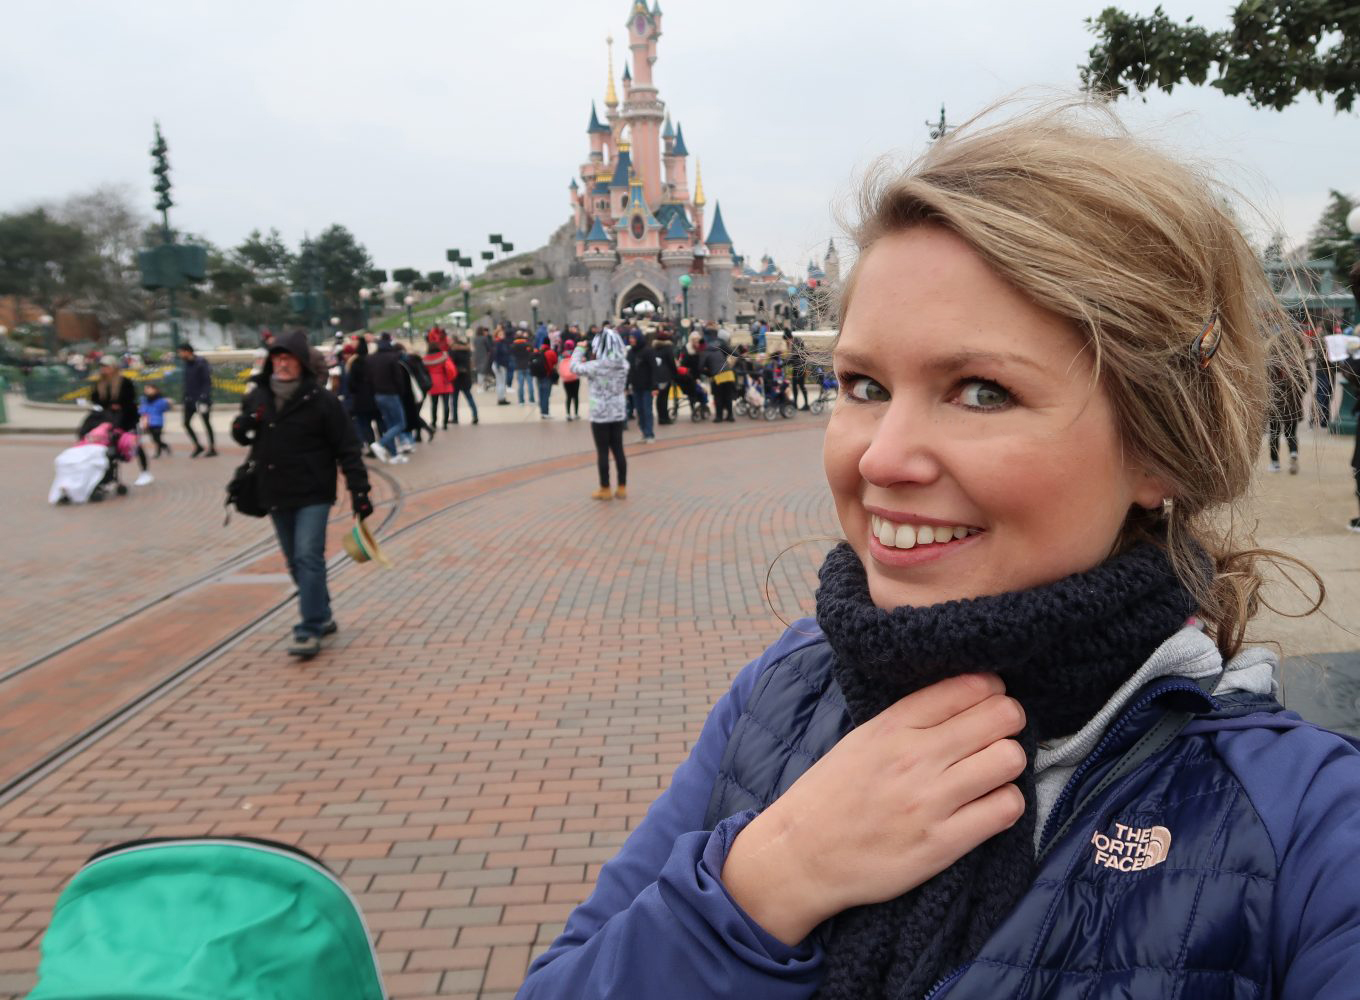 Dit gaan wij doen in Disneyland Parijs! (Disneyland Paris Frozen Celebration)